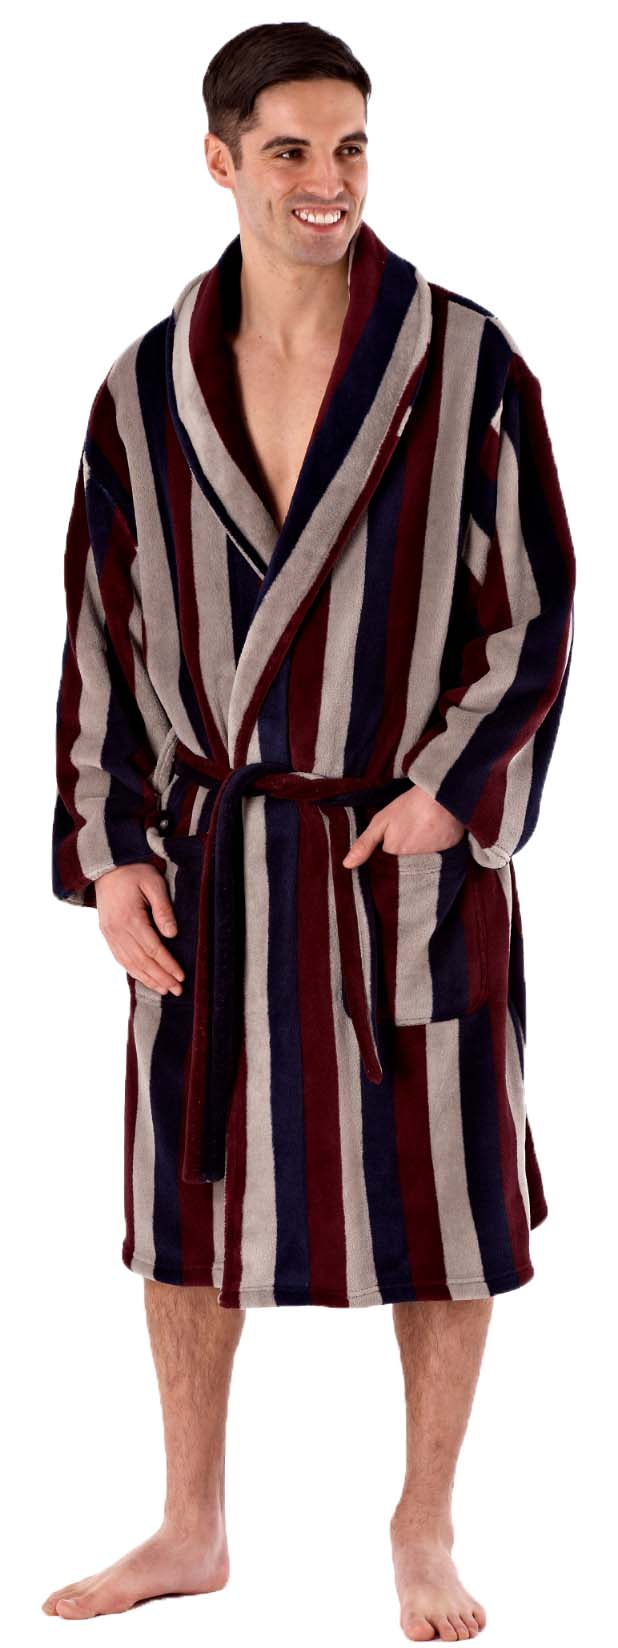 Shop our collection of bathrobes for men. Choose our Plush, Spa, Terry, or Hooded Style of Robes. With 8 sizes for men, easy to care fabrics, and an industry best day hassle-free return policy, you'll find the perfect men's robes here.